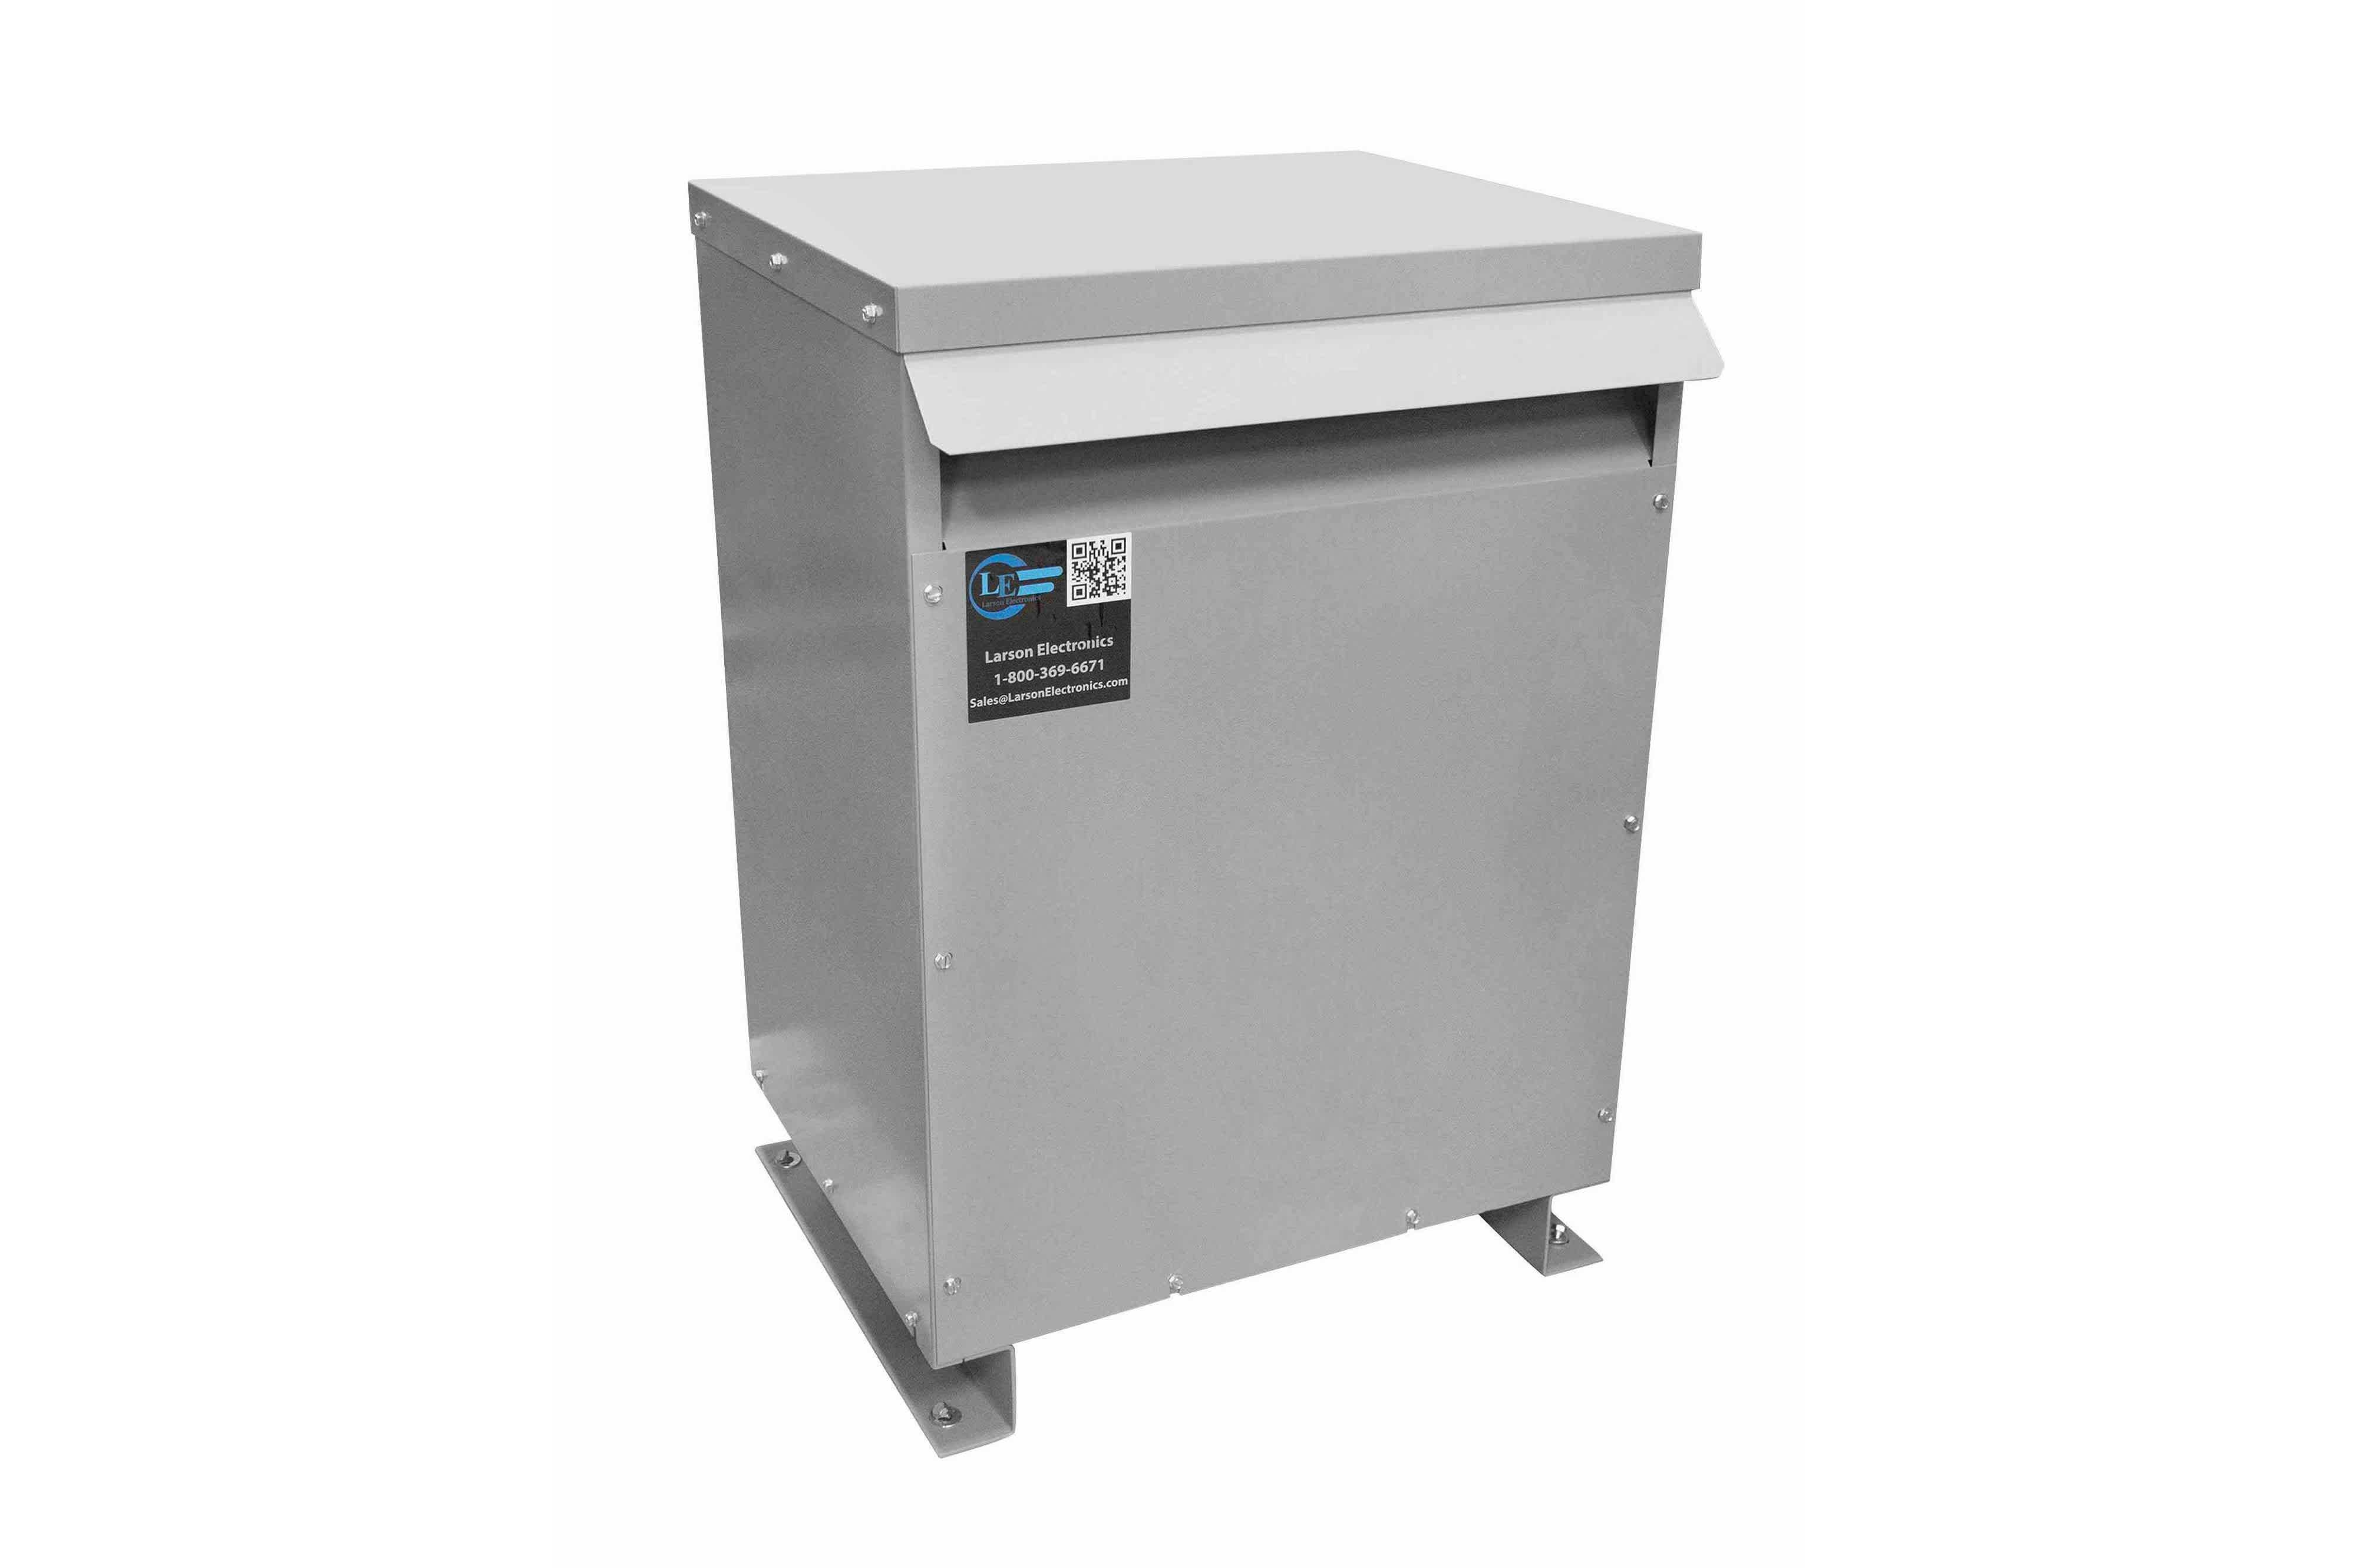 150 kVA 3PH Isolation Transformer, 460V Wye Primary, 575Y/332 Wye-N Secondary, N3R, Ventilated, 60 Hz